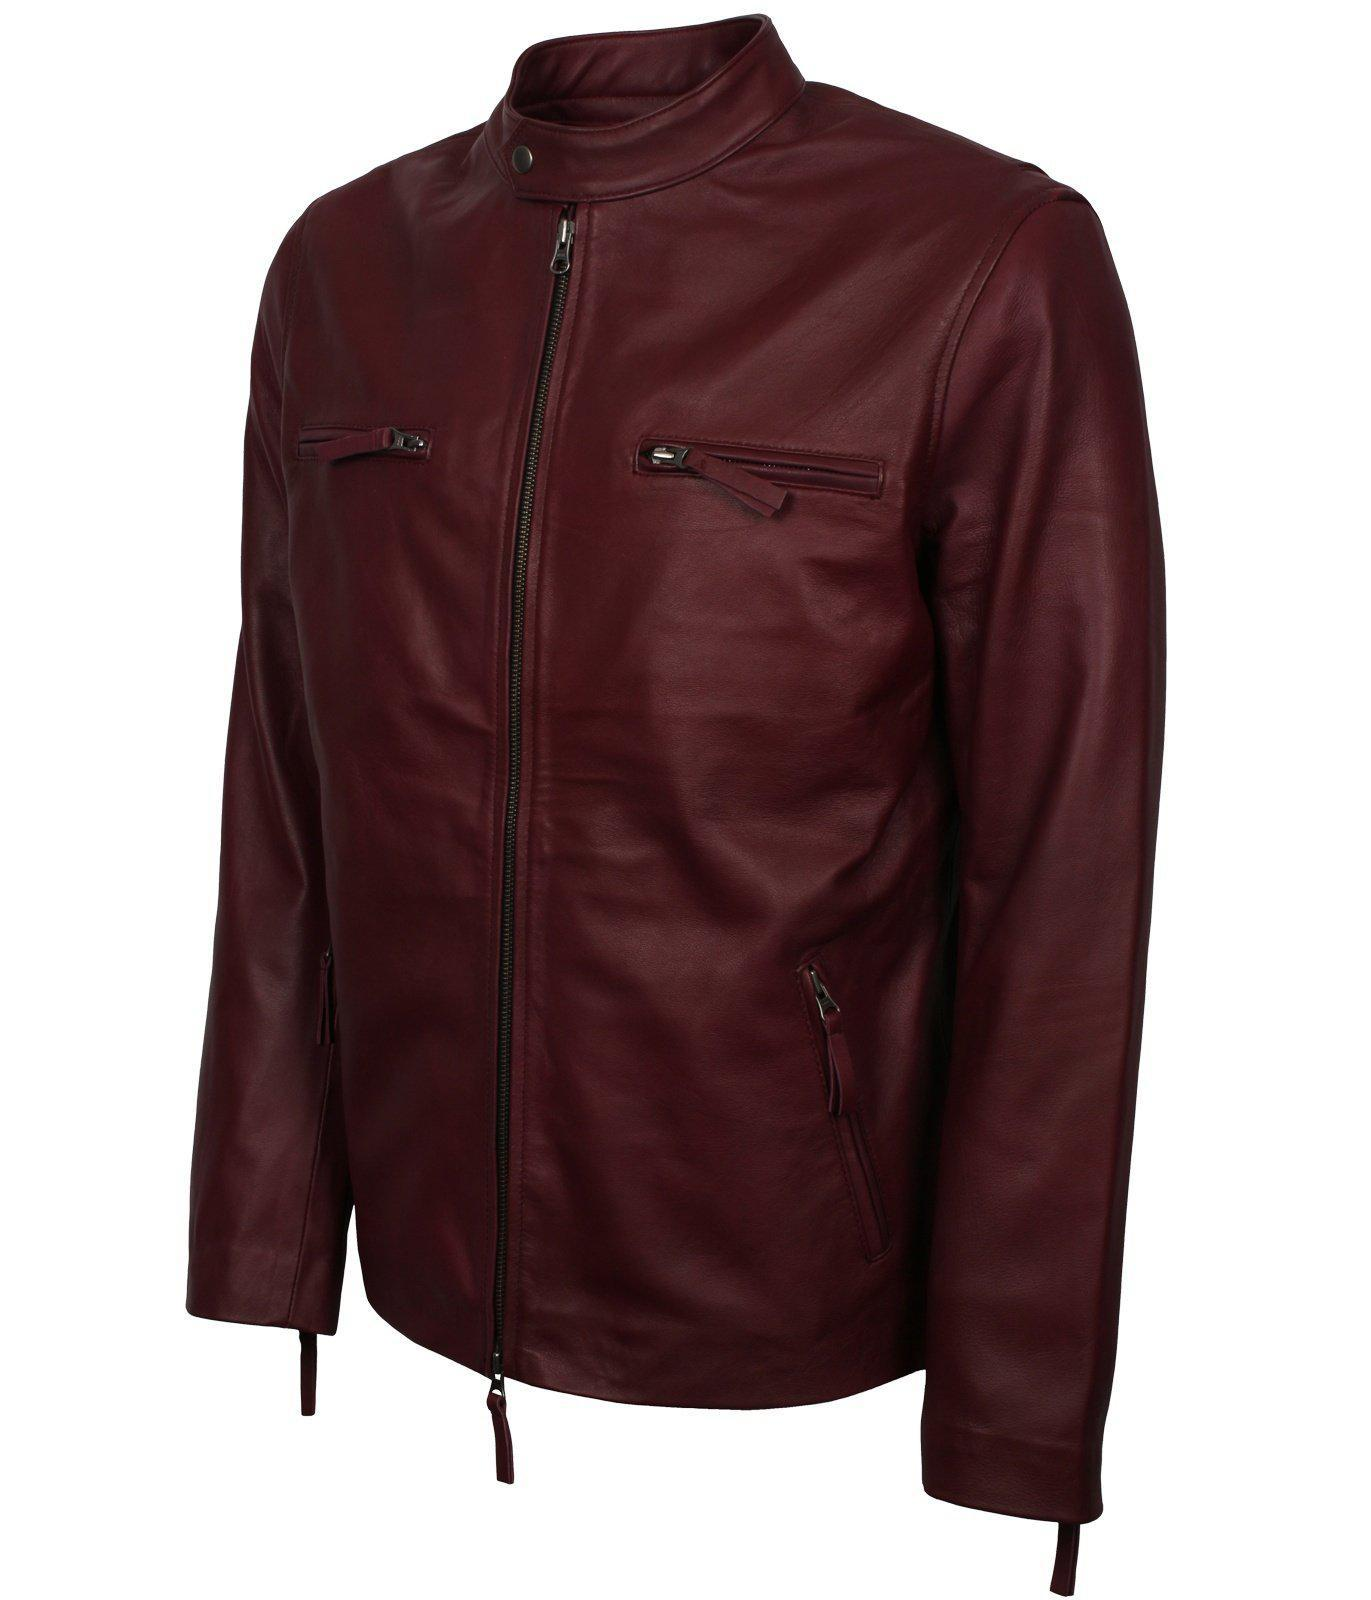 Maroon Leather Motorcycle Jacket